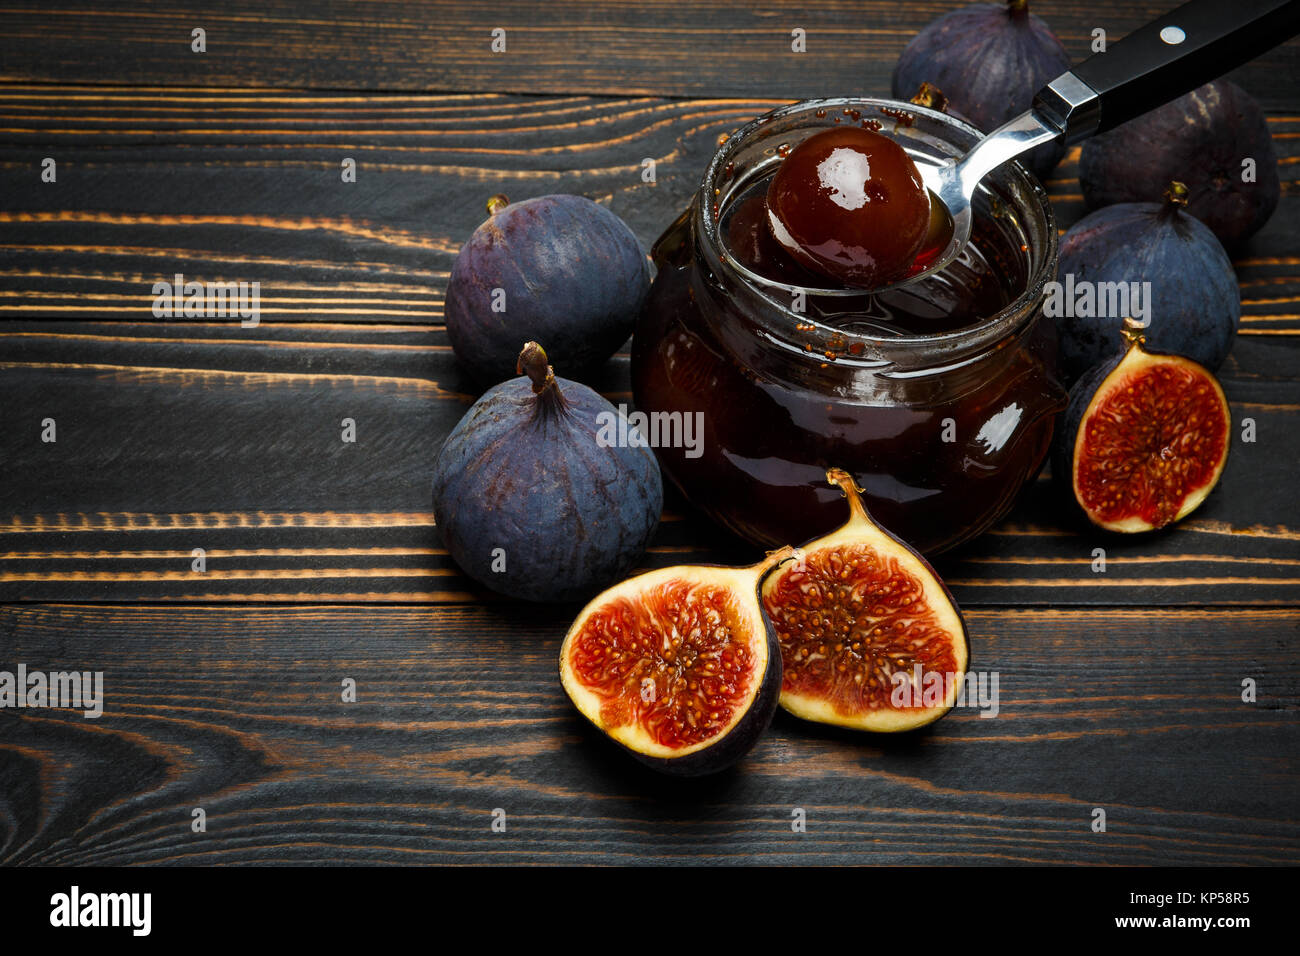 Glass jars full of fig jam and fig fruits on a dark wooden background - Stock Image